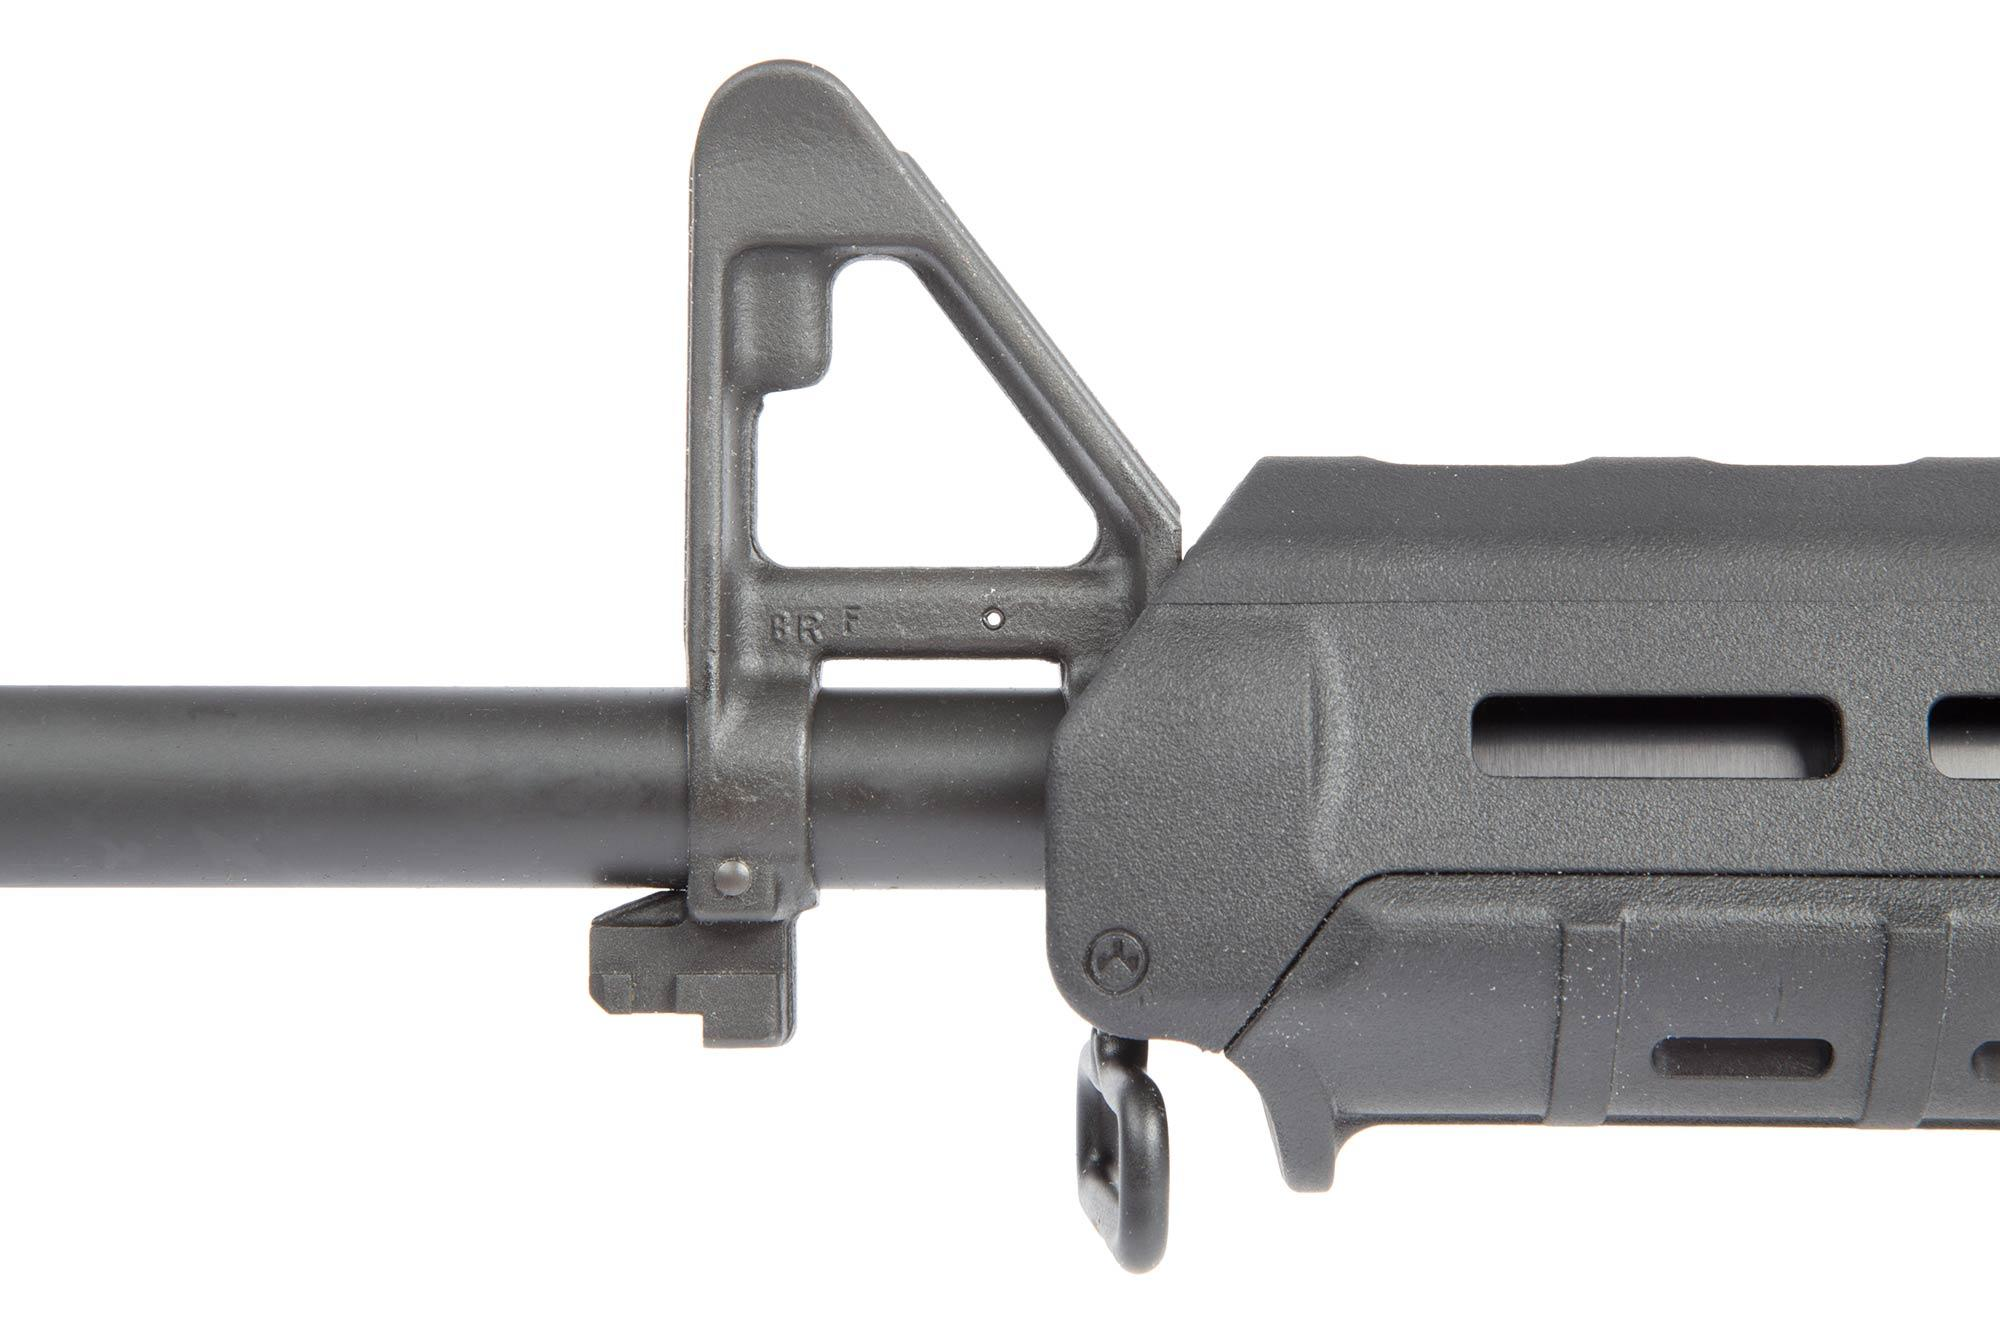 Palmetto State Armory 16 5.56 Freedom Rifle Kit - with Magpul MOE Furniture and Front Sight Base